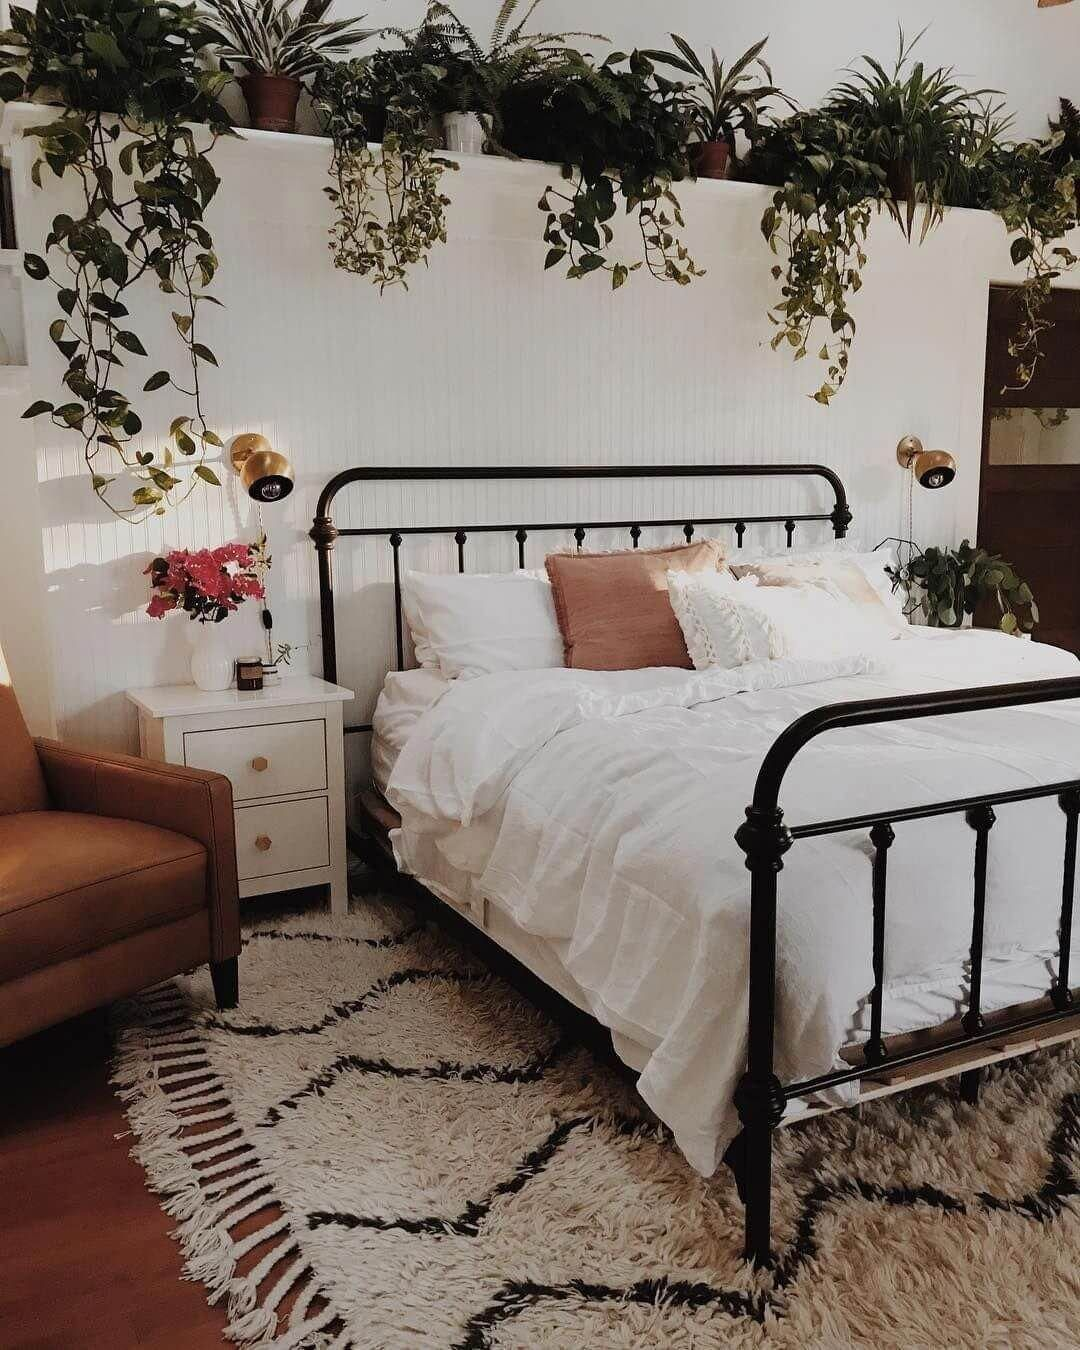 25 Absorbing Rustic Bedroom Concepts (Passions For Sleeping) - 18A